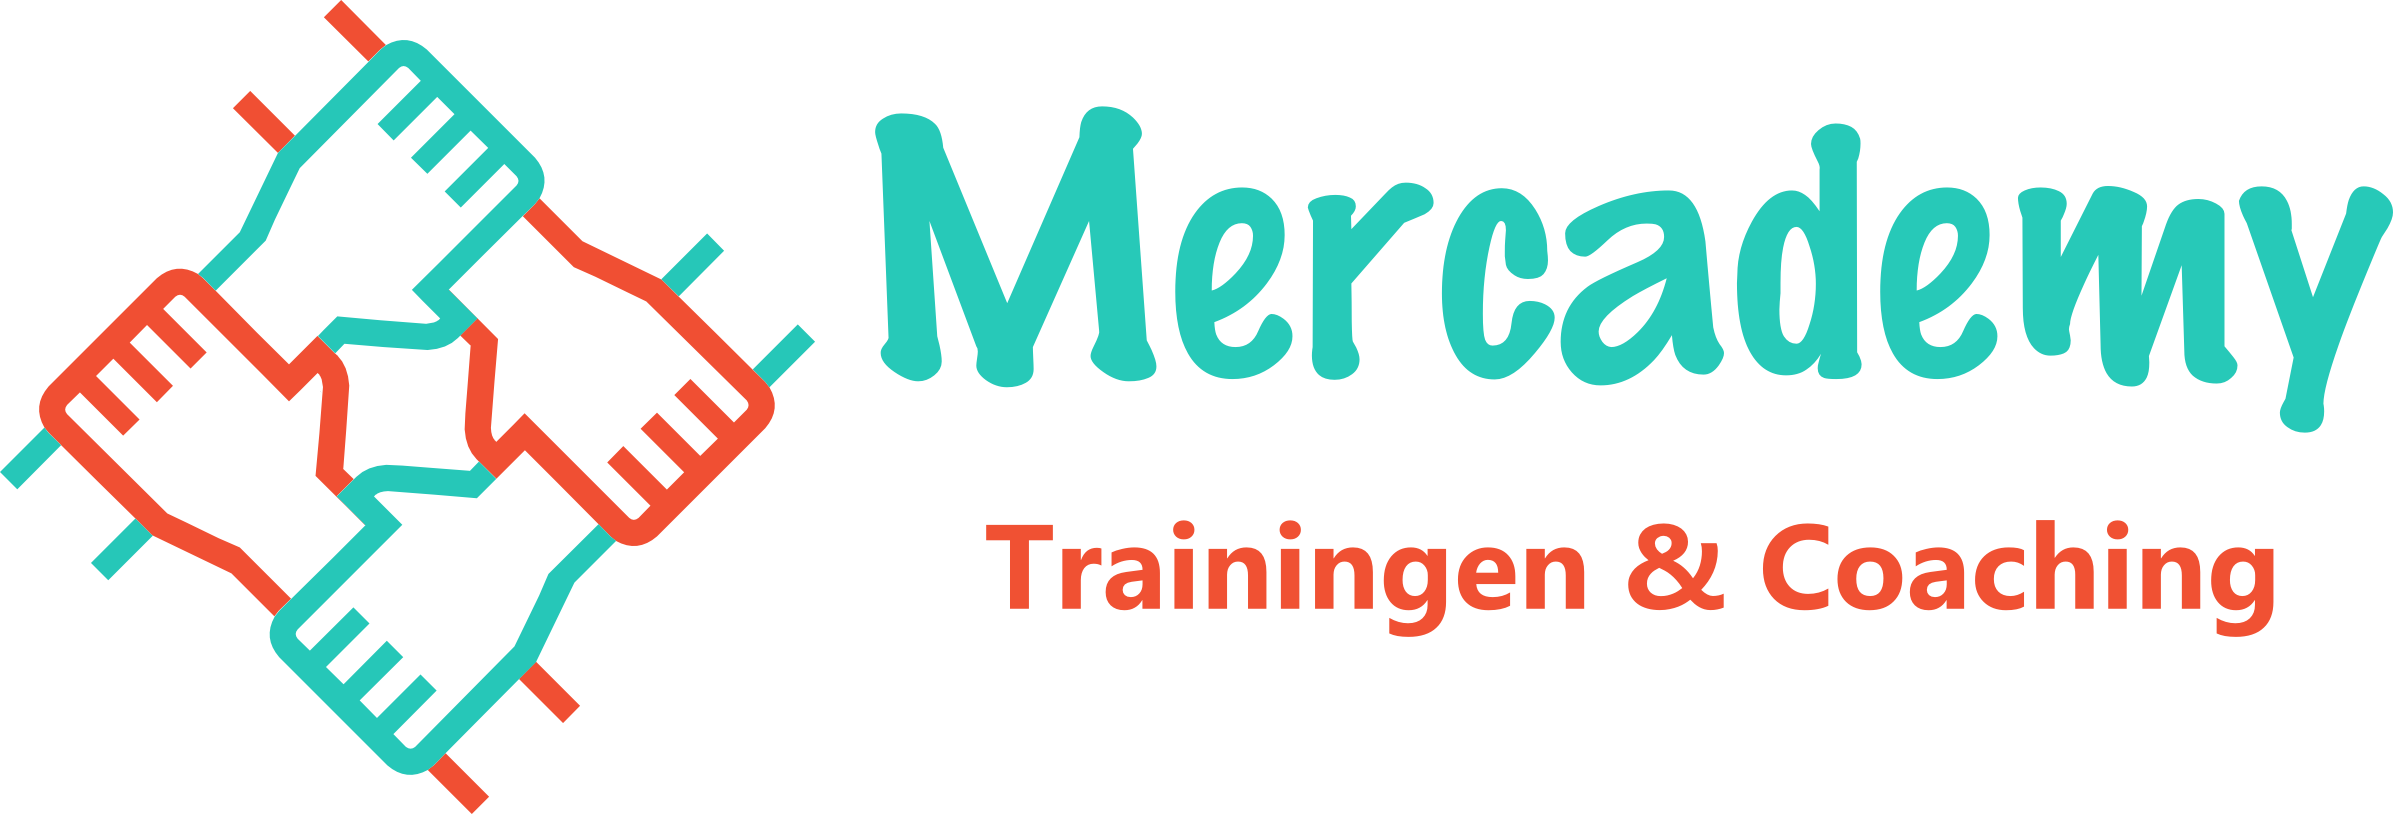 Mercademy Training & Coaching